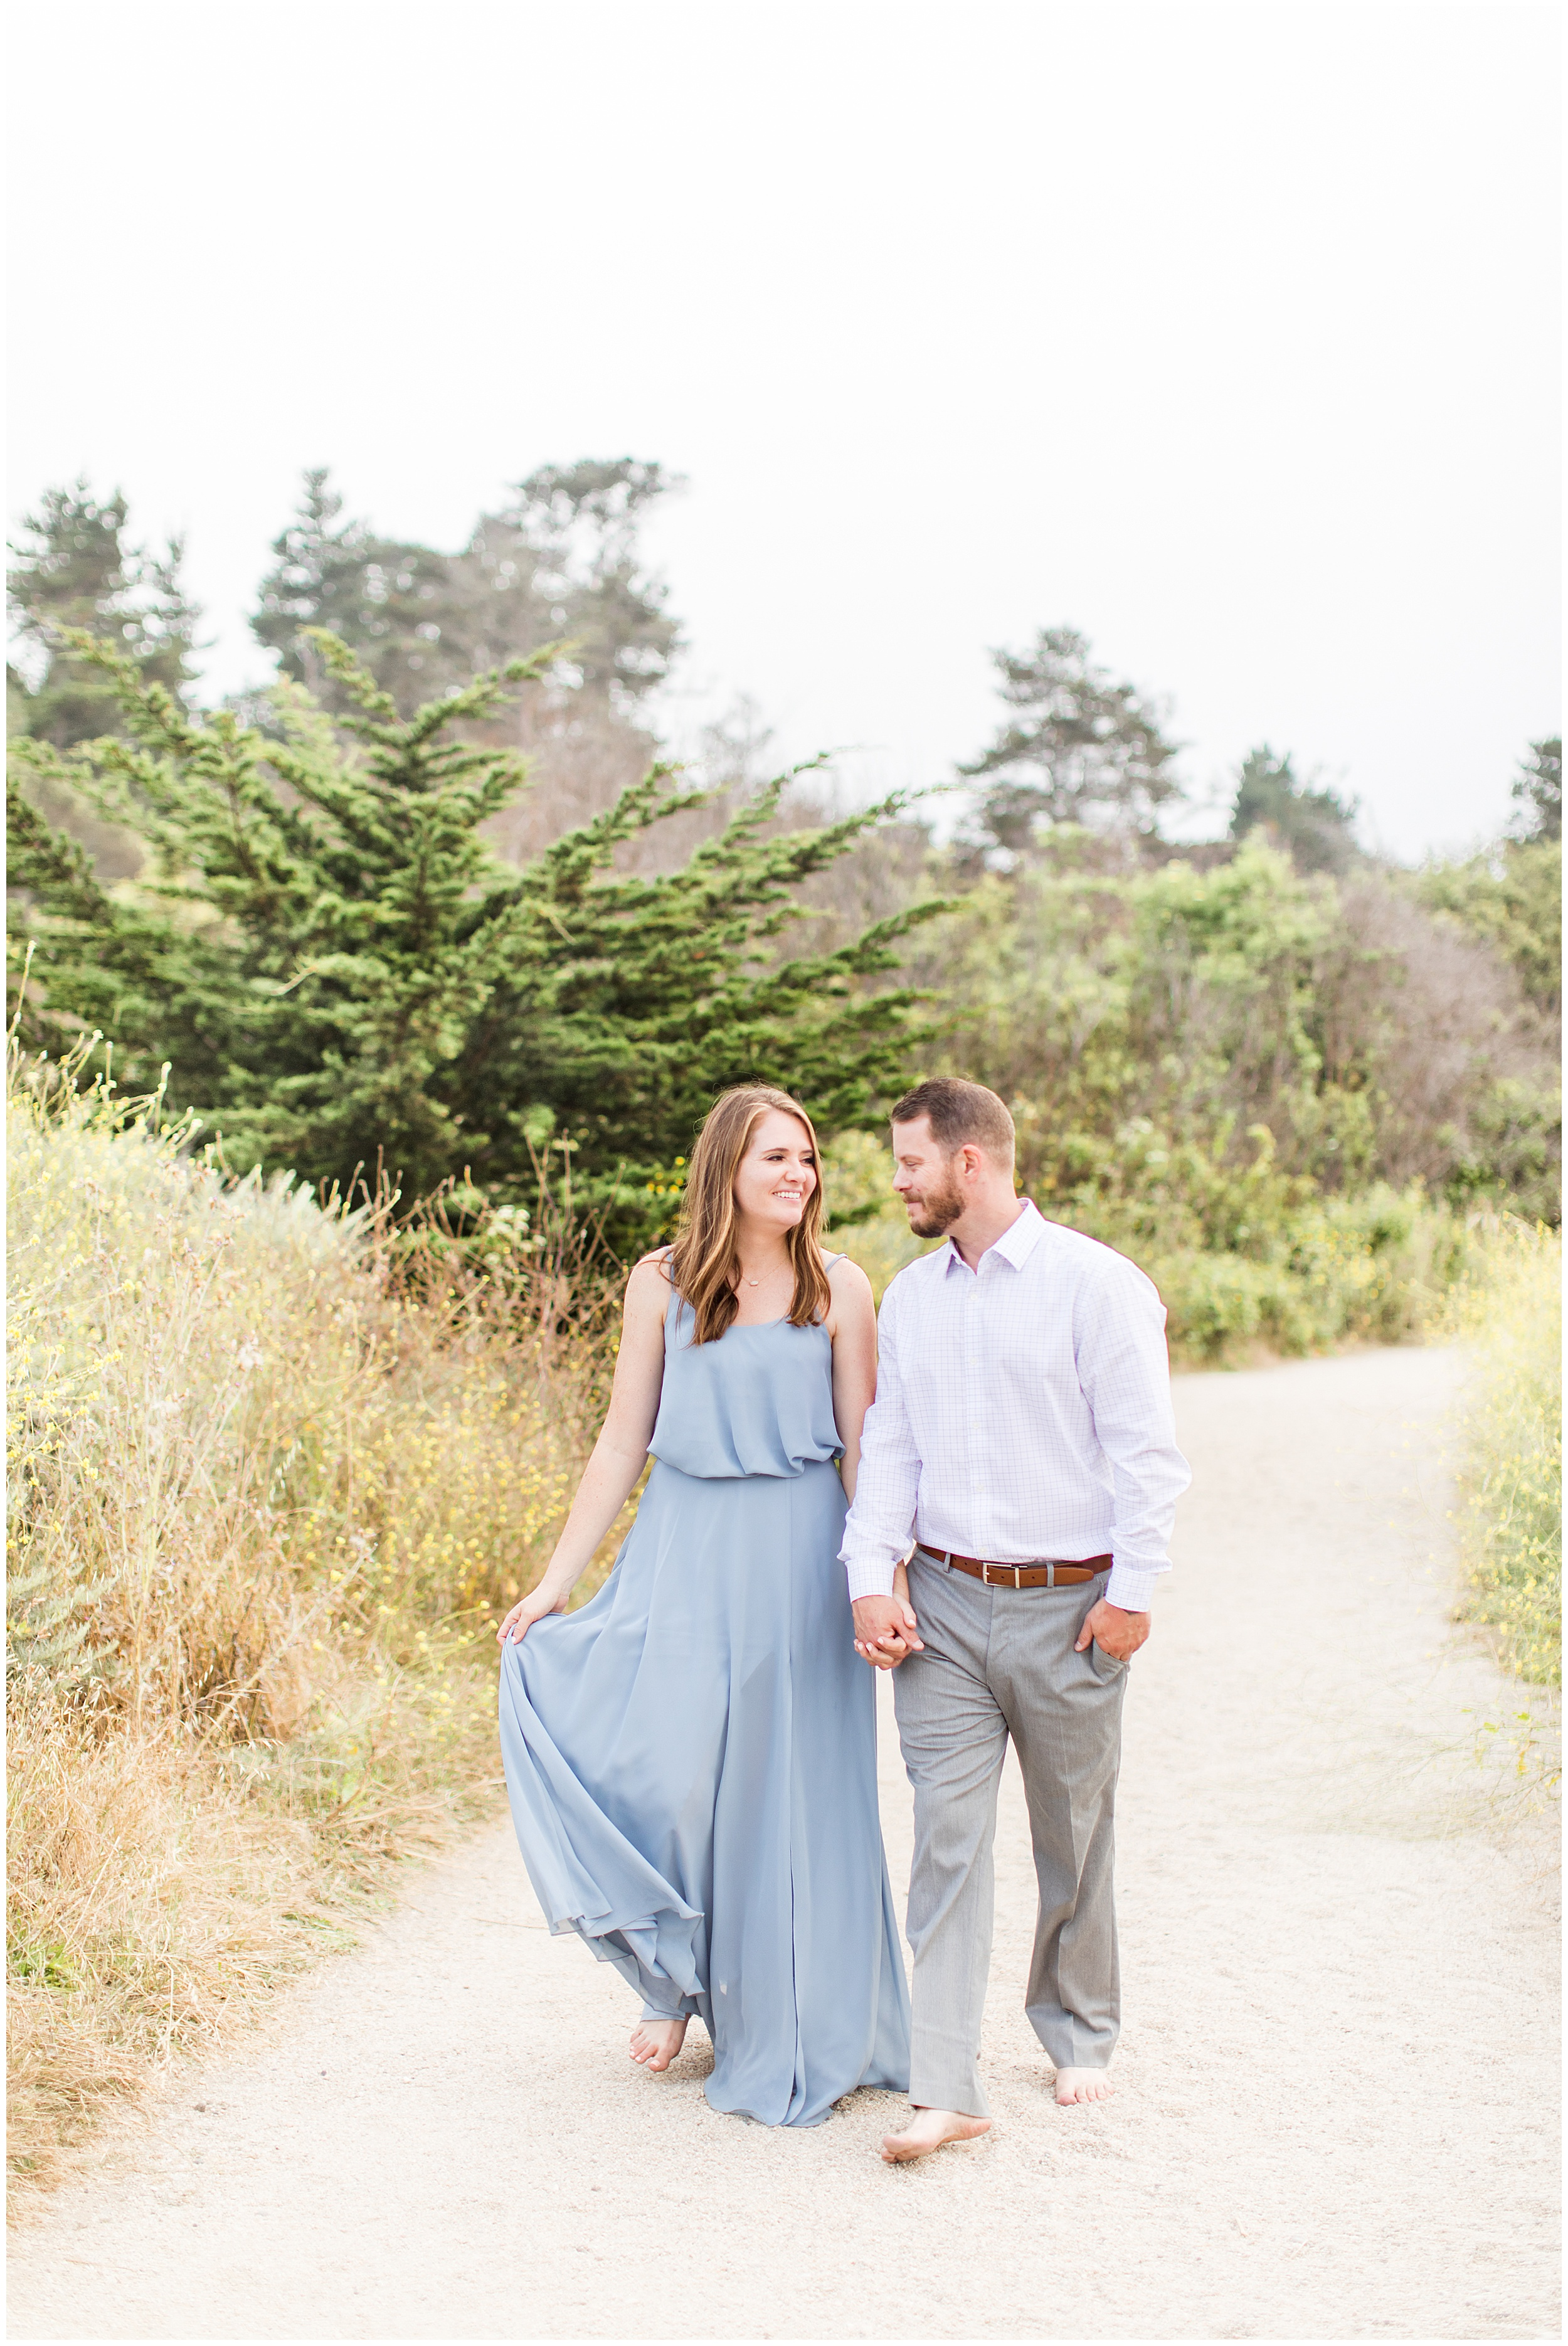 2019 carmel by the sea surprise proposal engagement session wedding photographer angela sue photography_0034.jpg